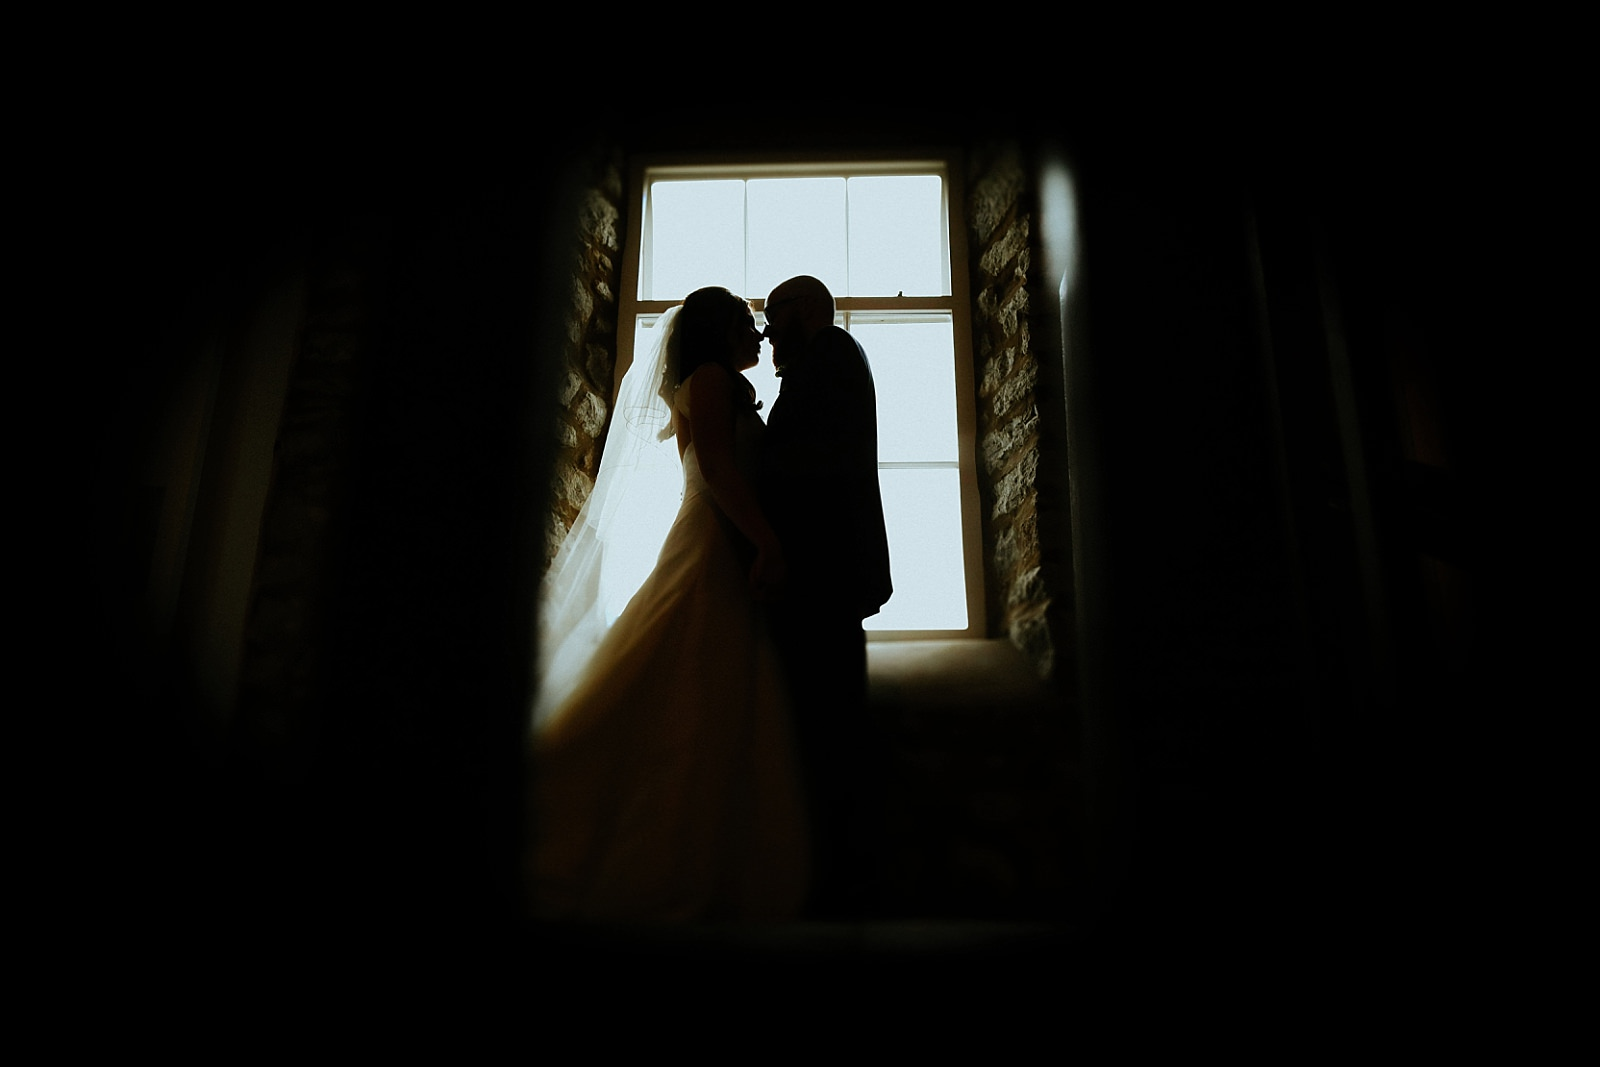 artistic shot of bride and groom by a window